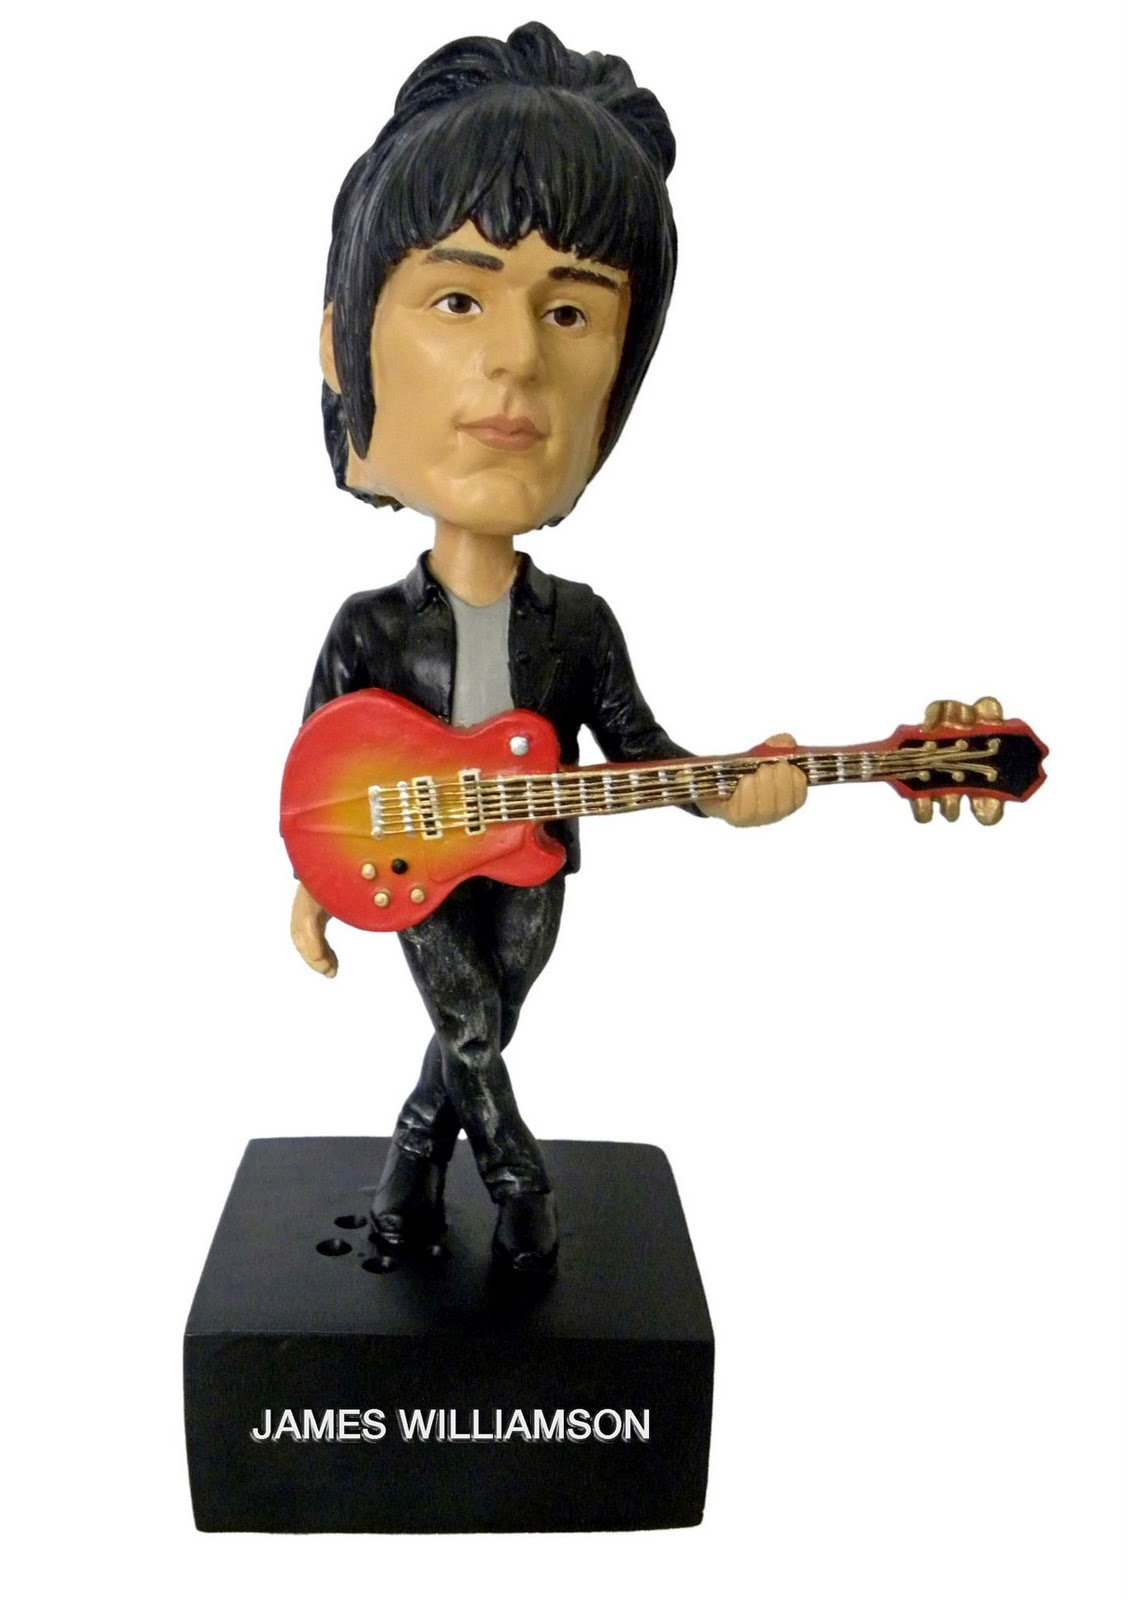 James Williamson (Stooges) Riffing bobblehead